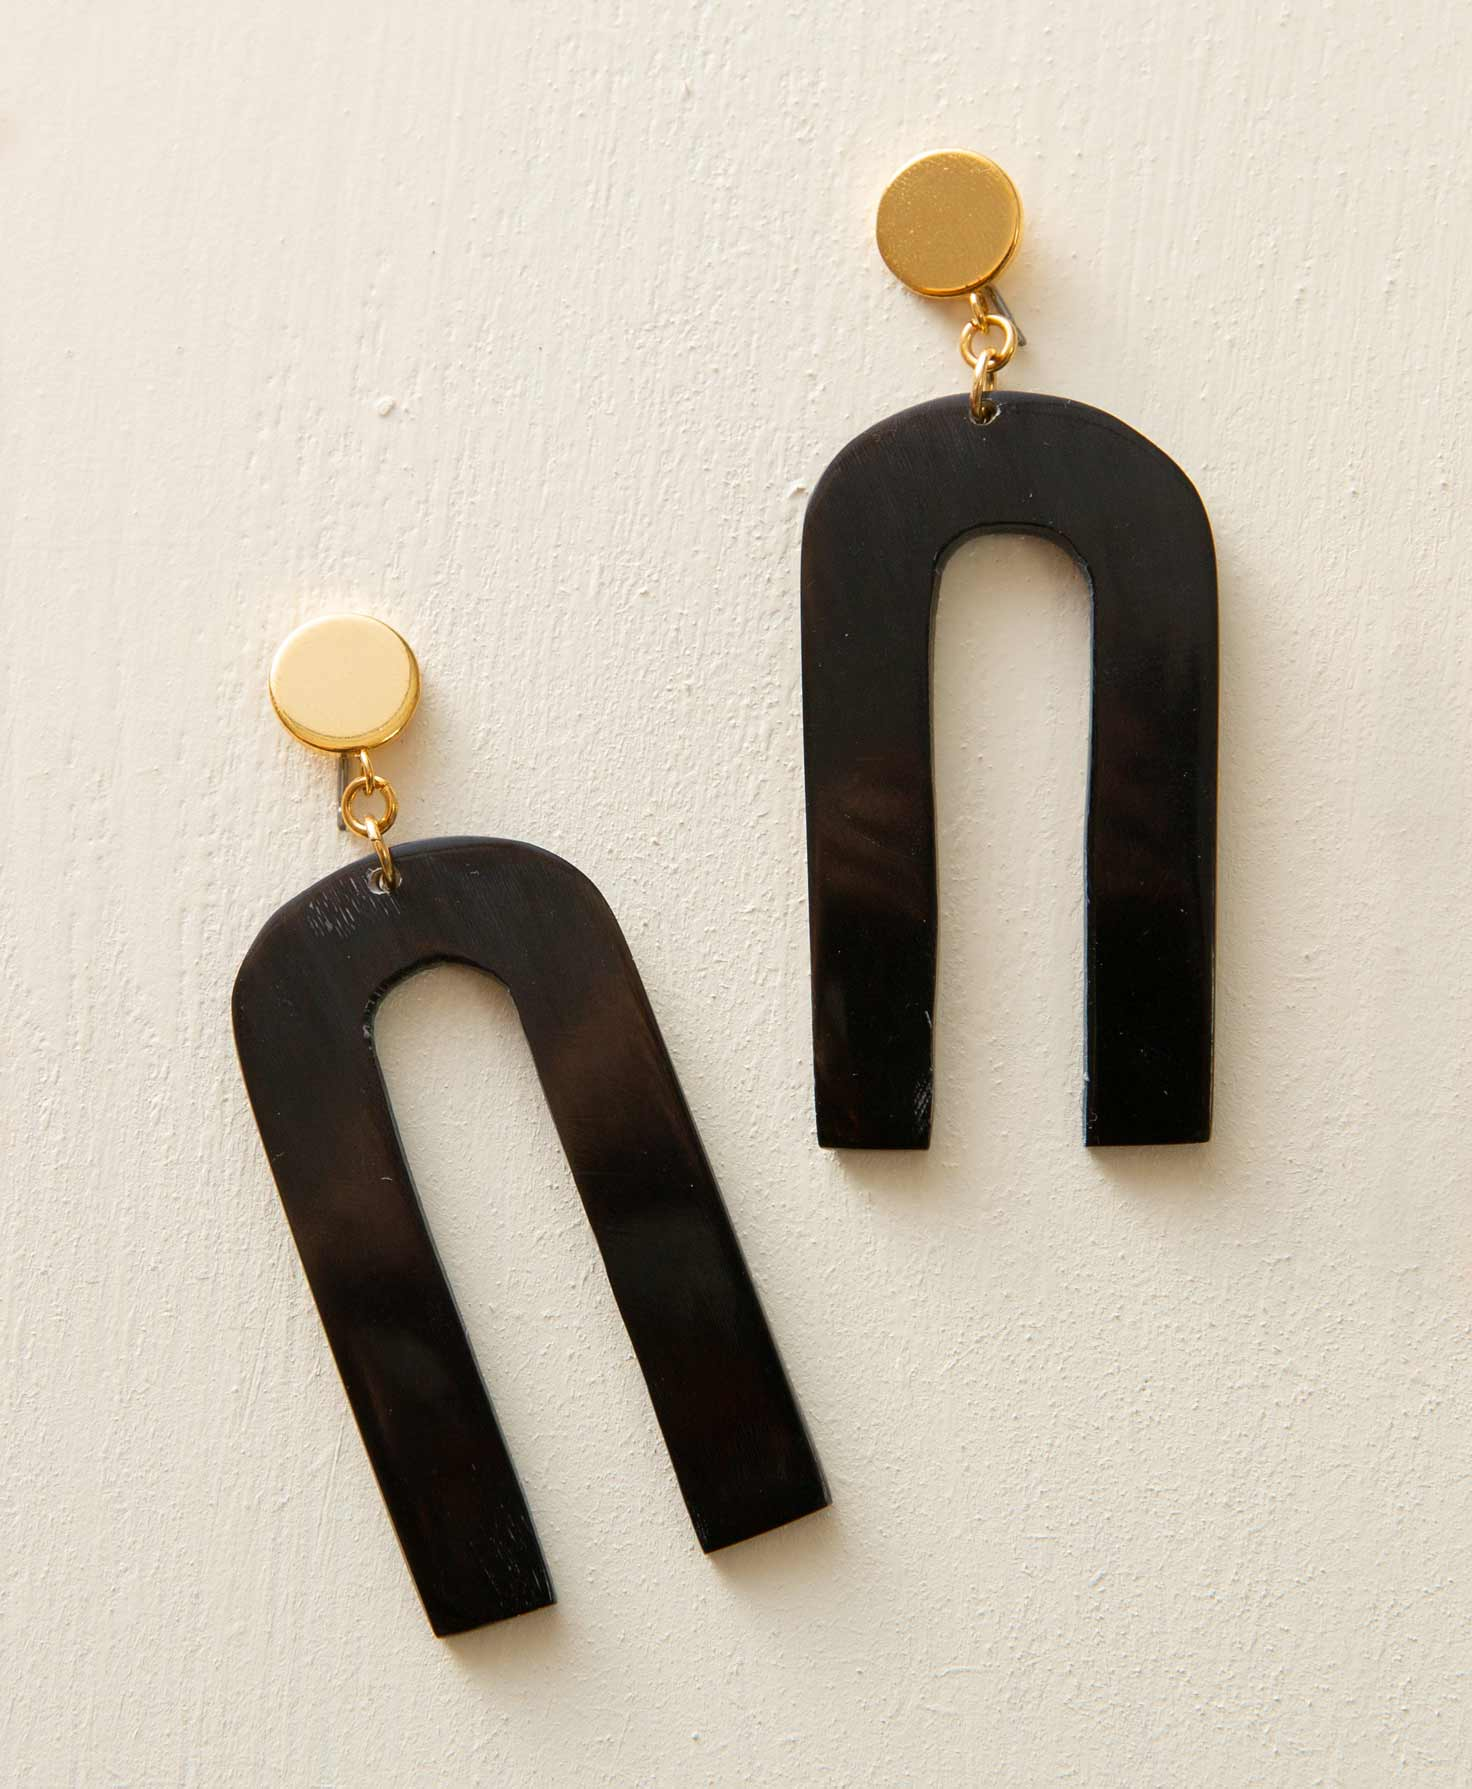 The Orleans Earrings lay on a white surface. They have a flat, round gold post. Swinging down from the post is a black horn piece shaped like an elongated arch. The pair has a modern, geometric look. The metal posts are glossy, and the black pieces have a matte finish.